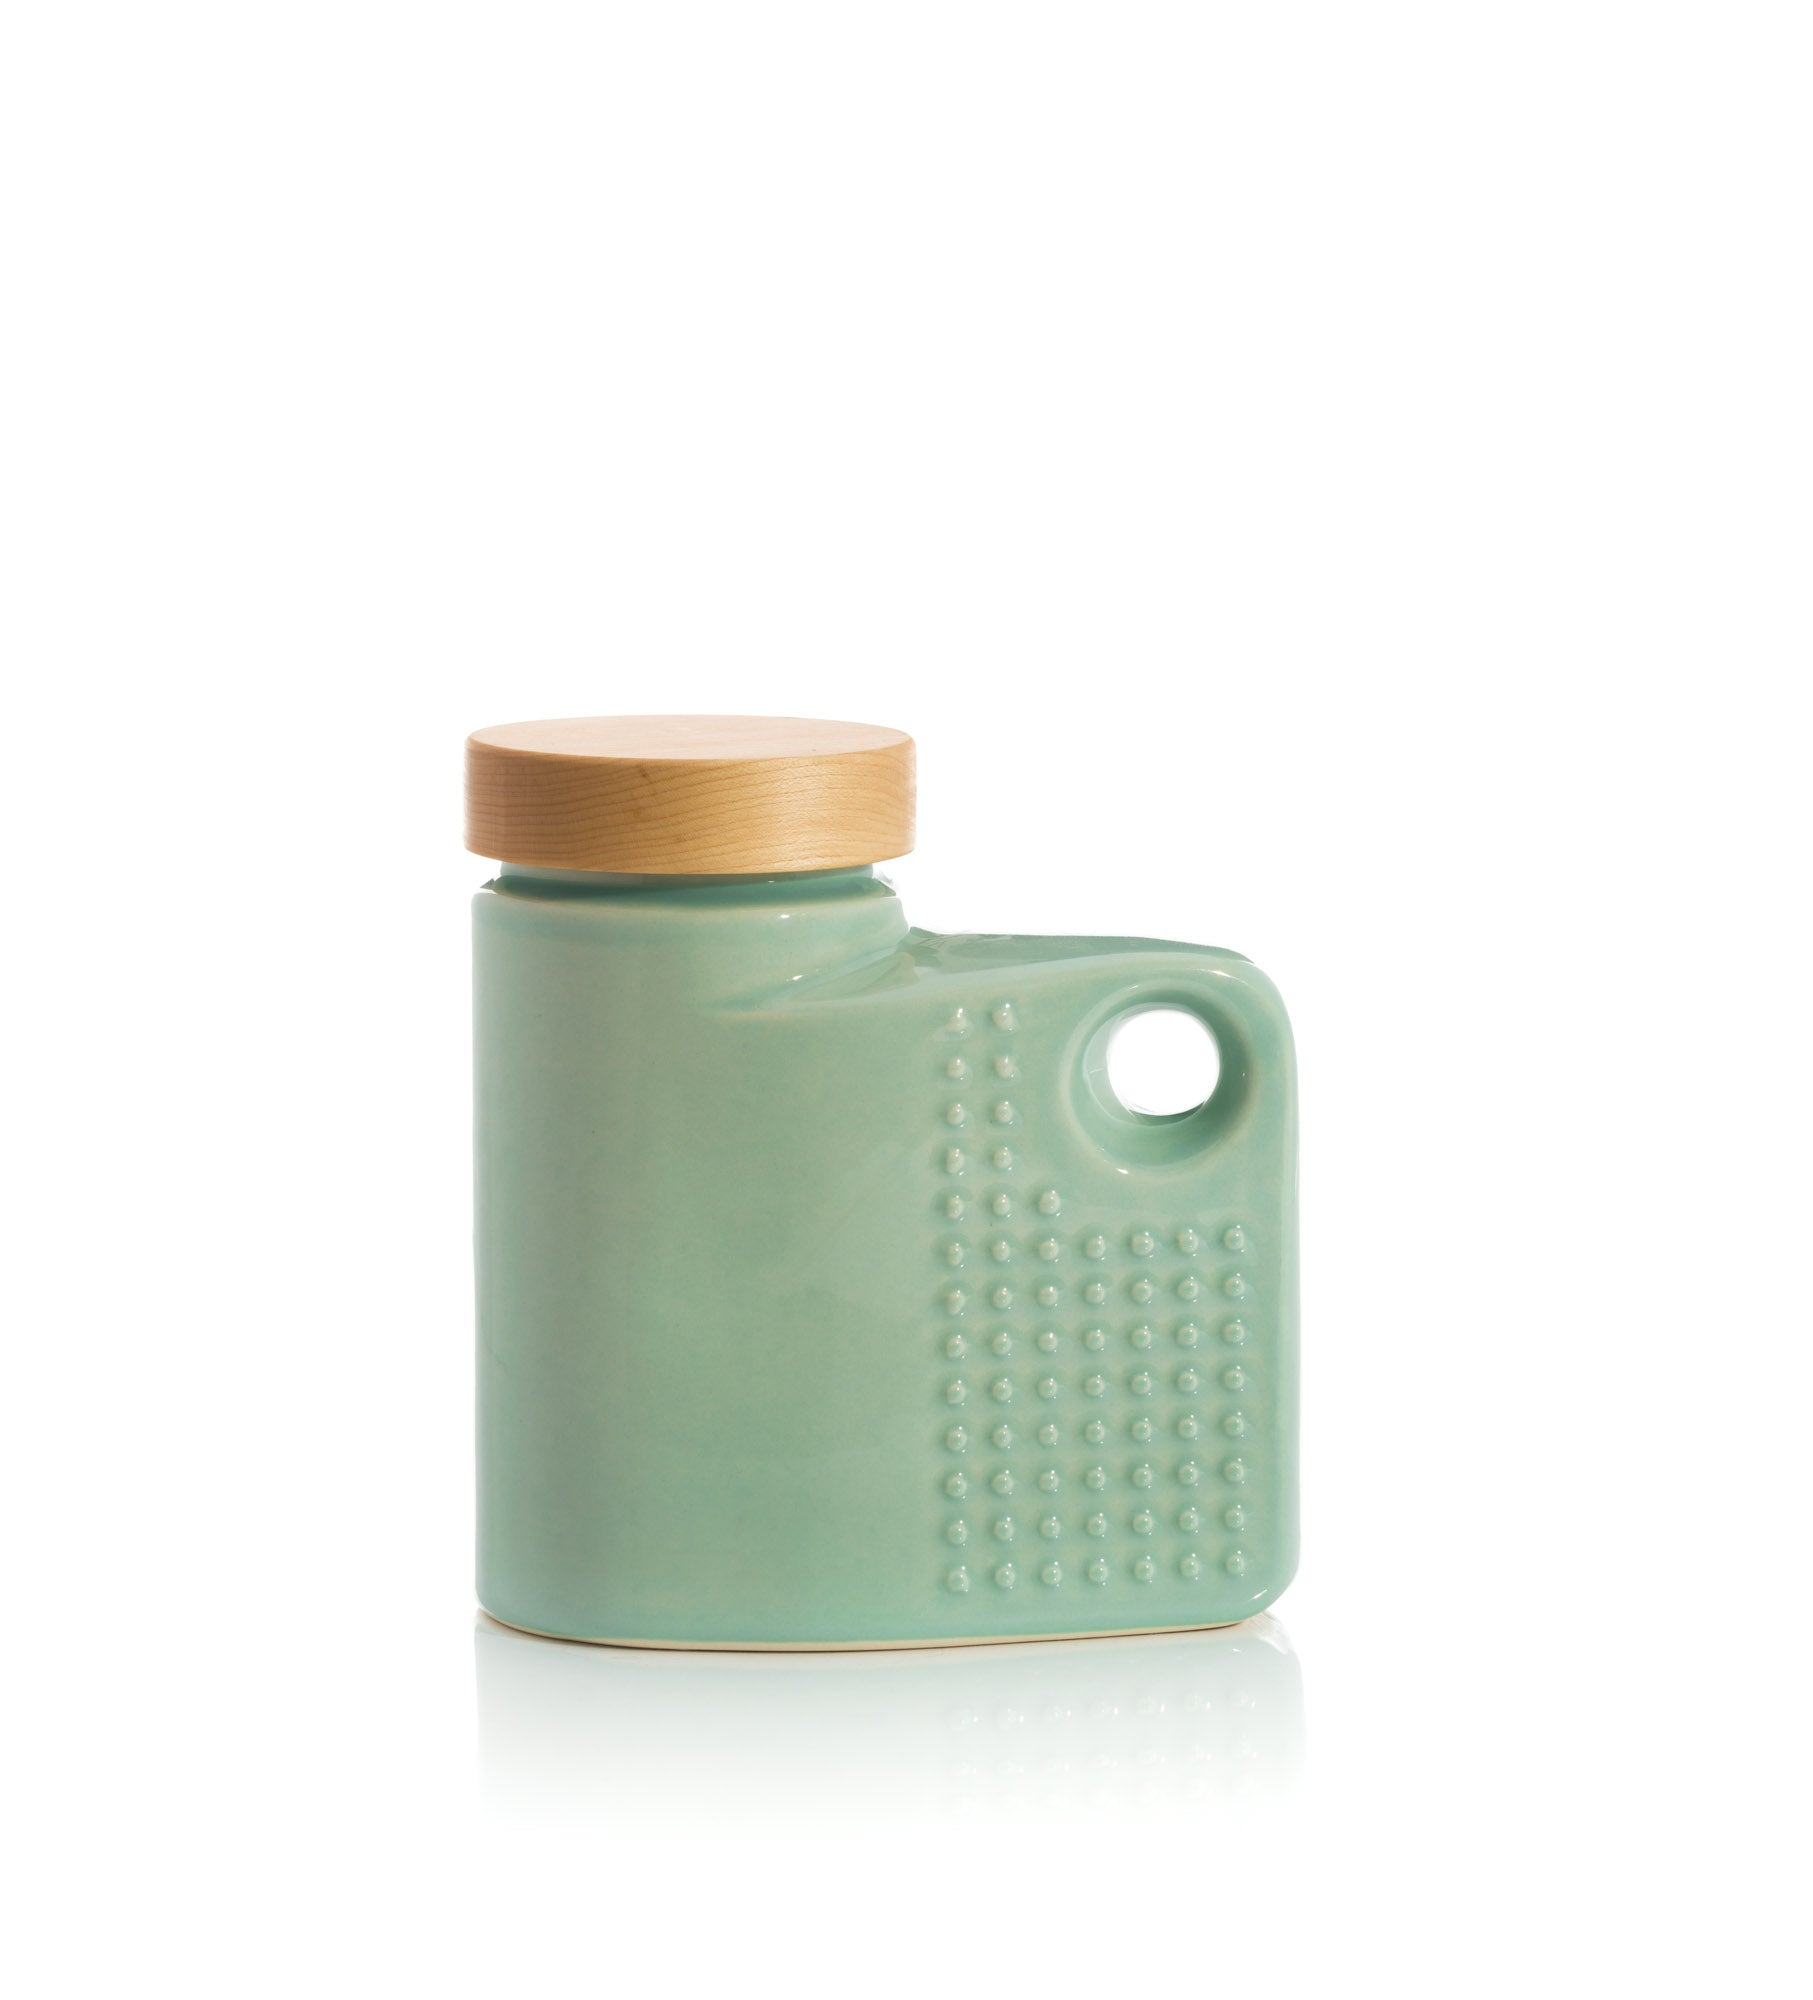 32oz Canister - Gloss Celadon